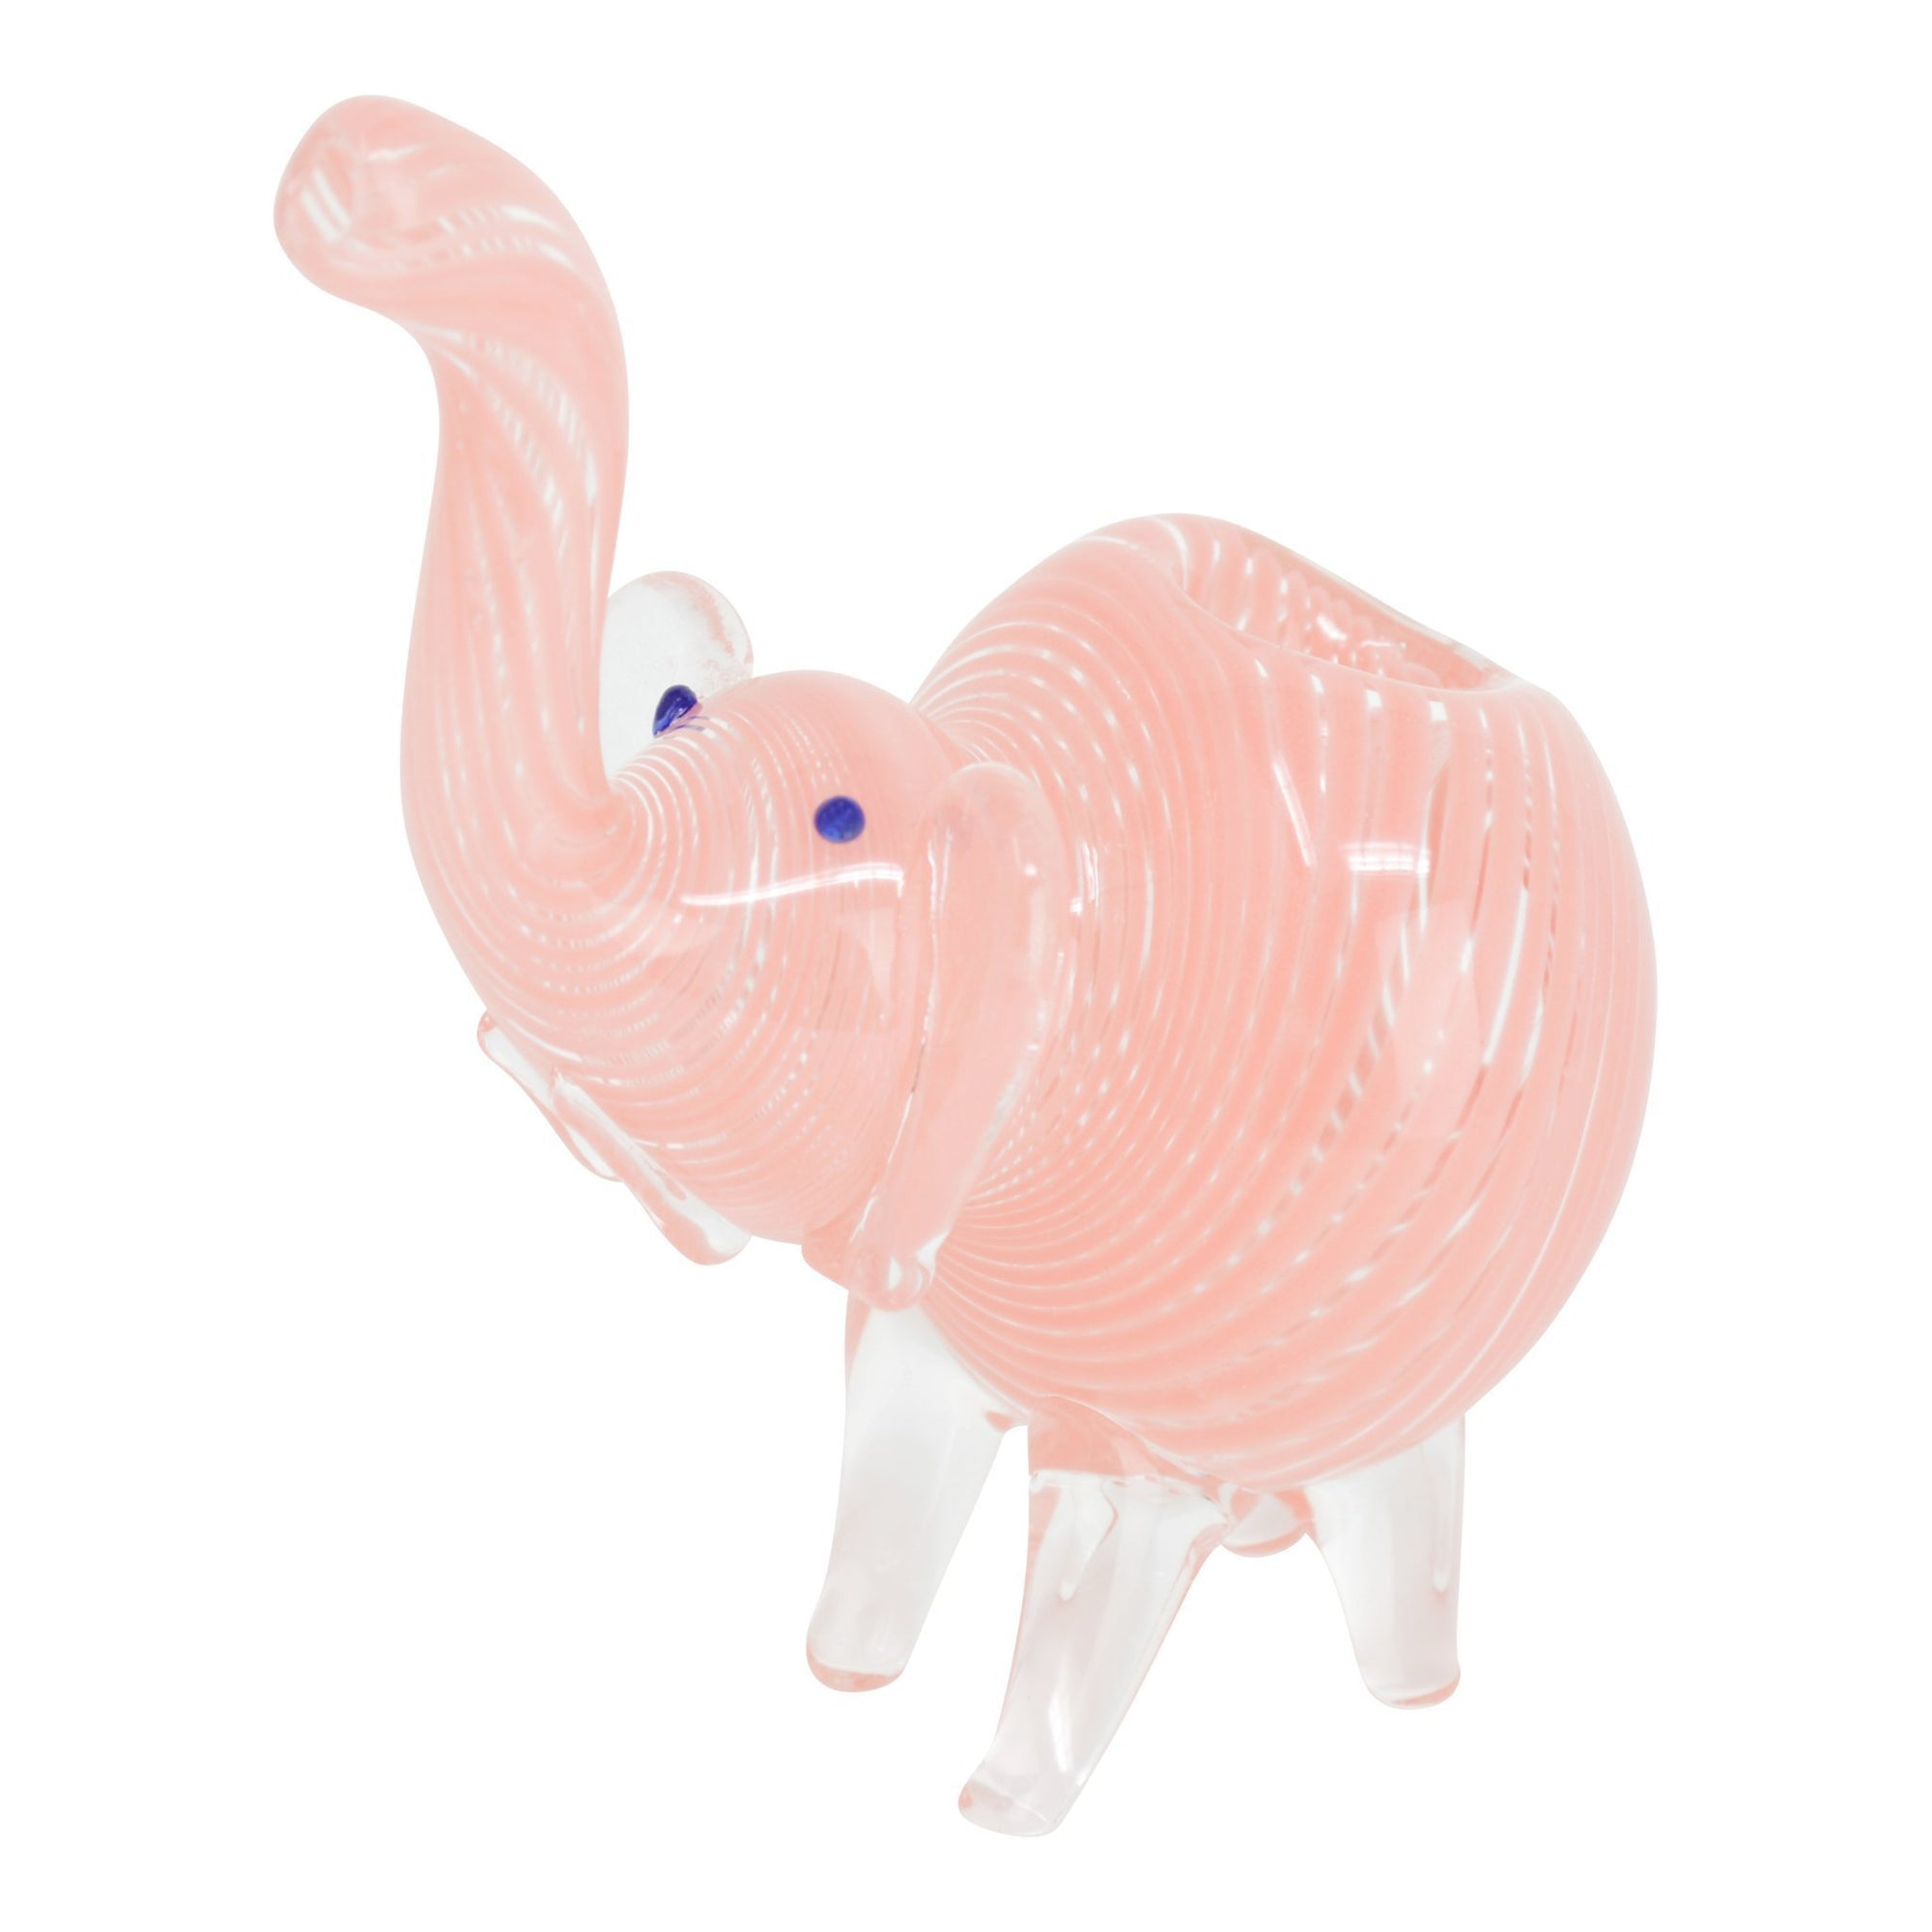 Cute pink glass pipe smoking device with a look and shape of elephant looking upwards 4-legged base